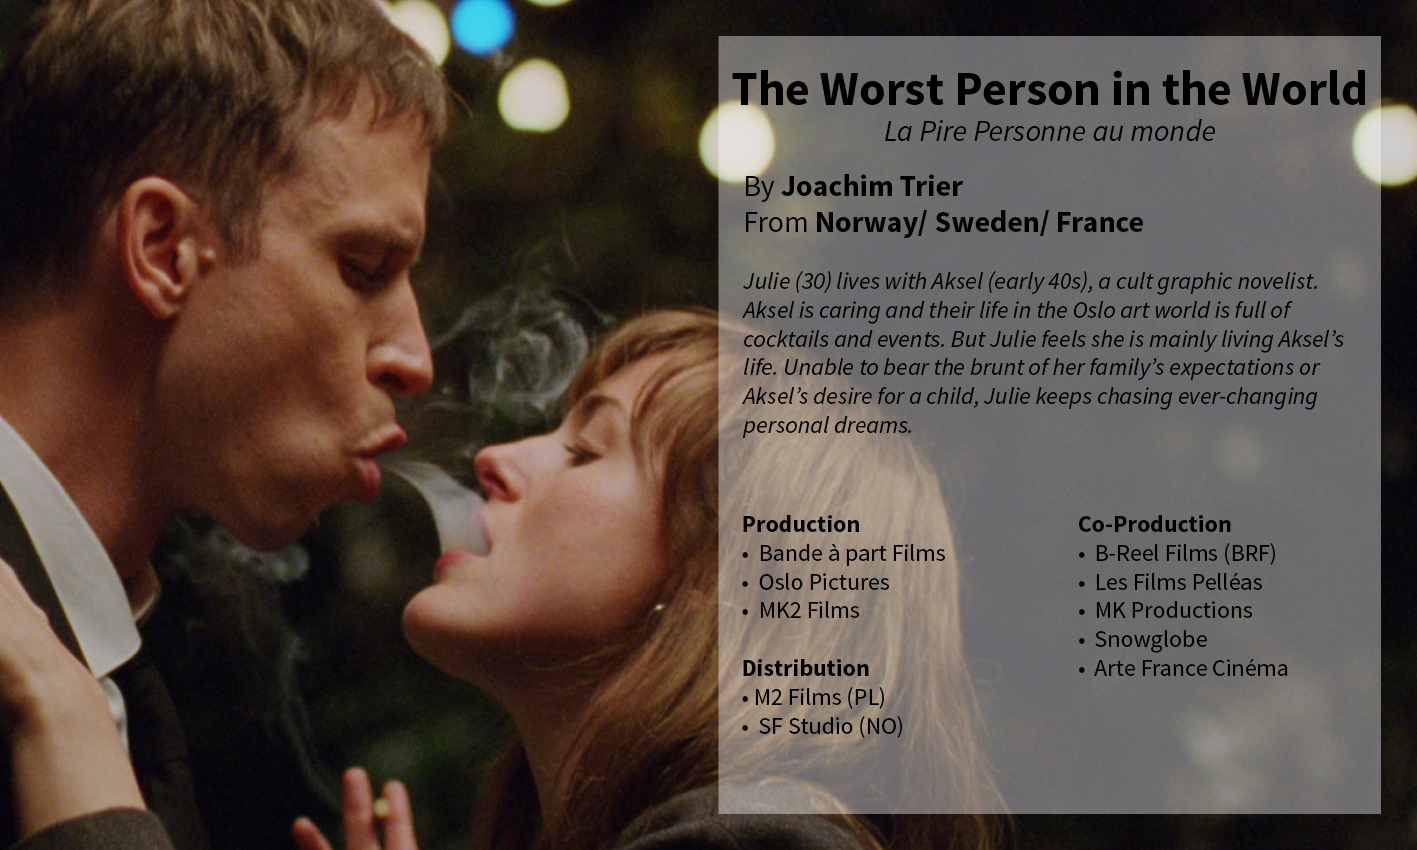 The Worst Person in the World Joachim Trier